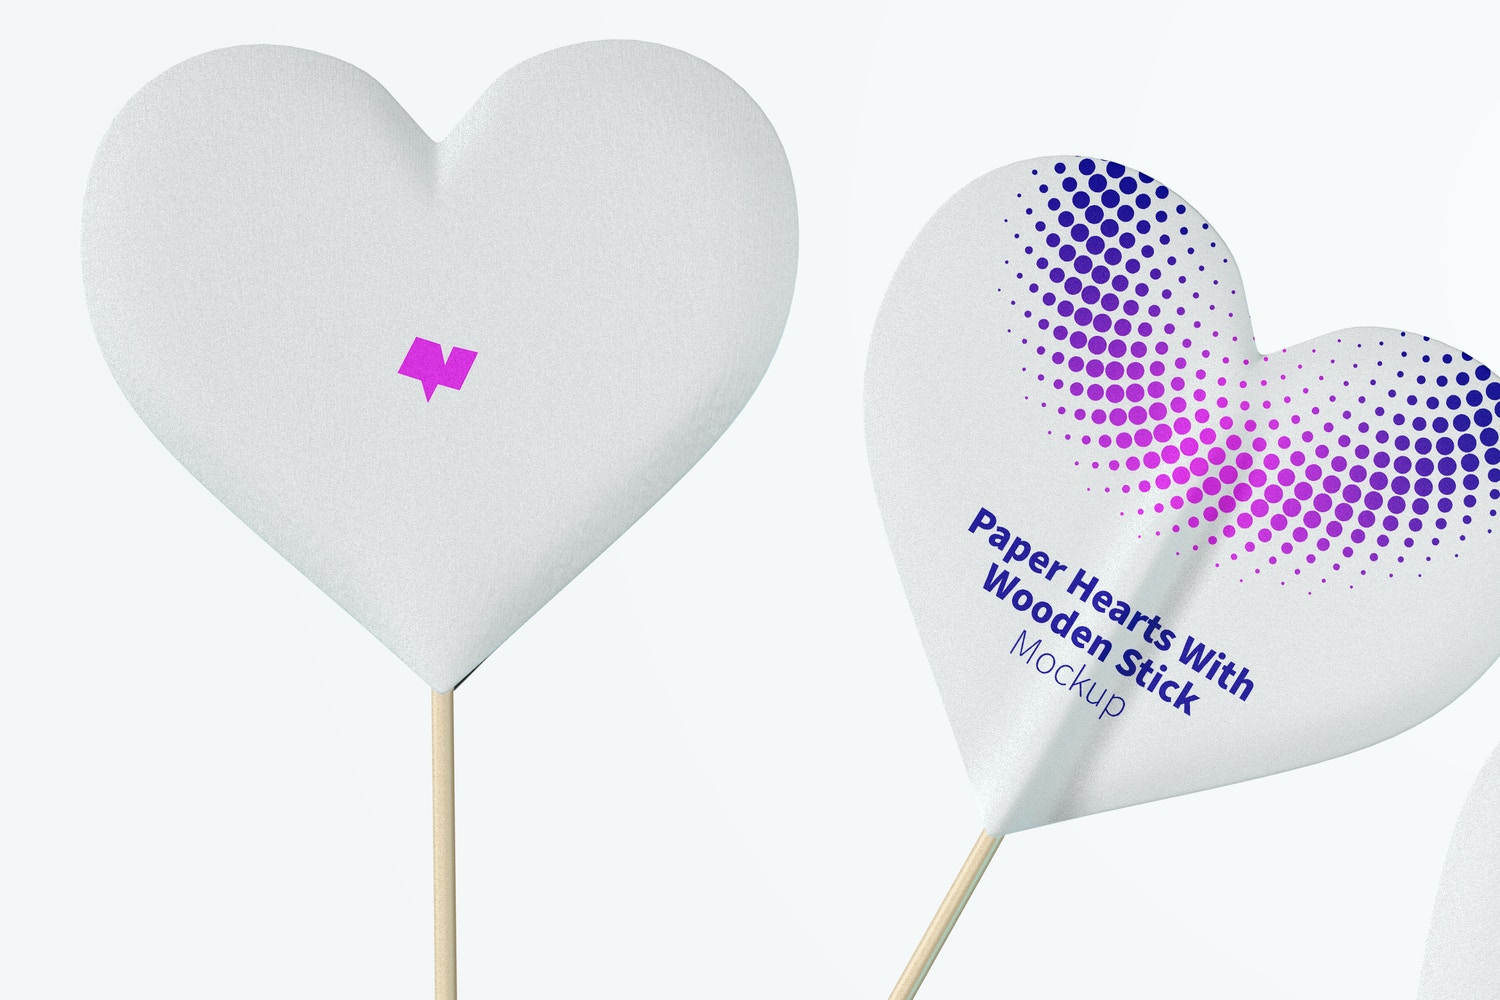 Paper Hearts With Wooden Stick Mockup